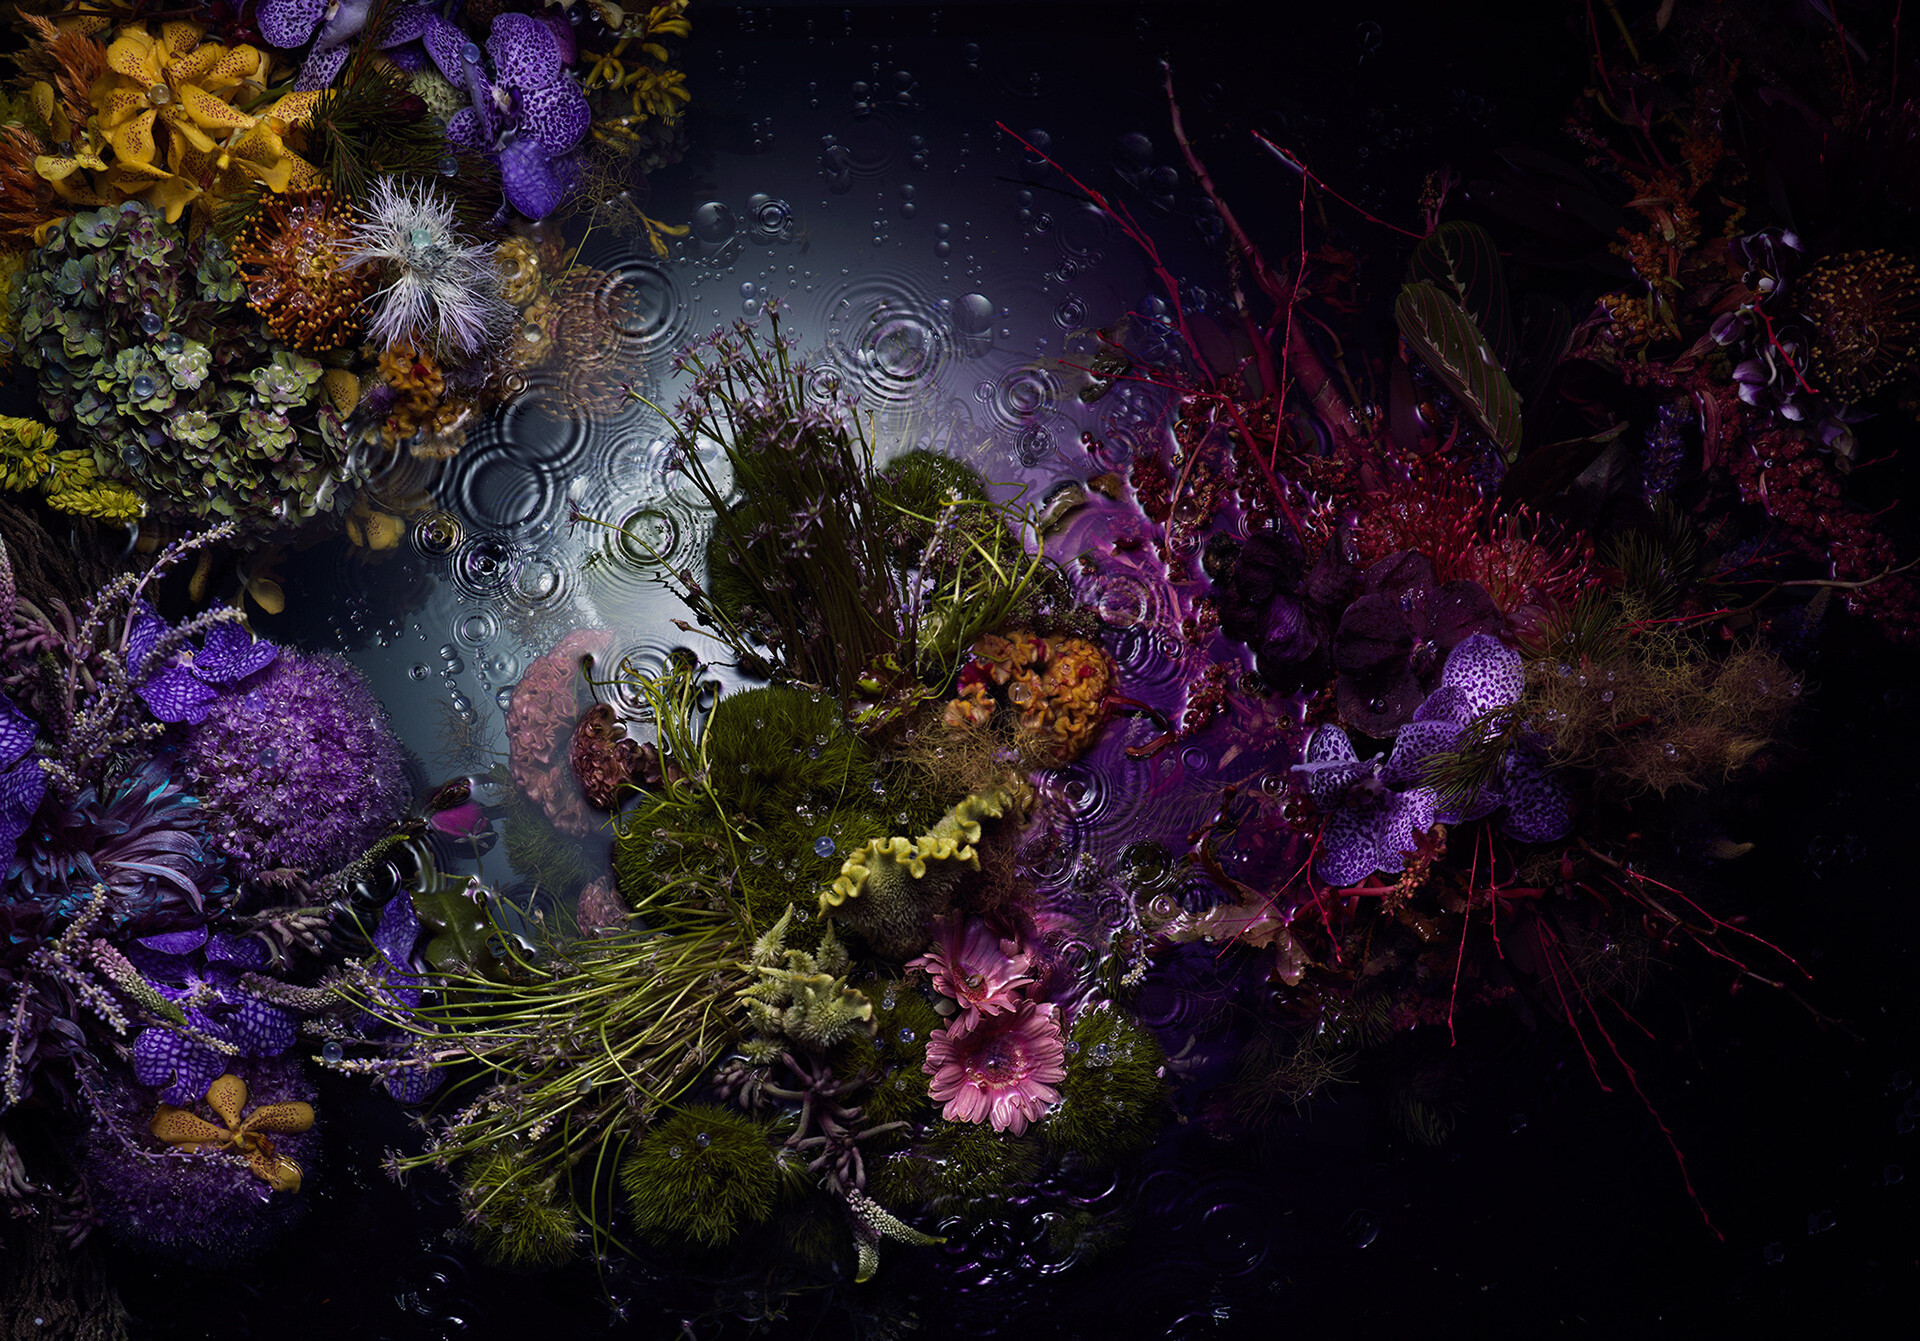 A photo of a bunch of flowers floating on top of a dark pool of water with some droplets in the water as if it's starting to rain.